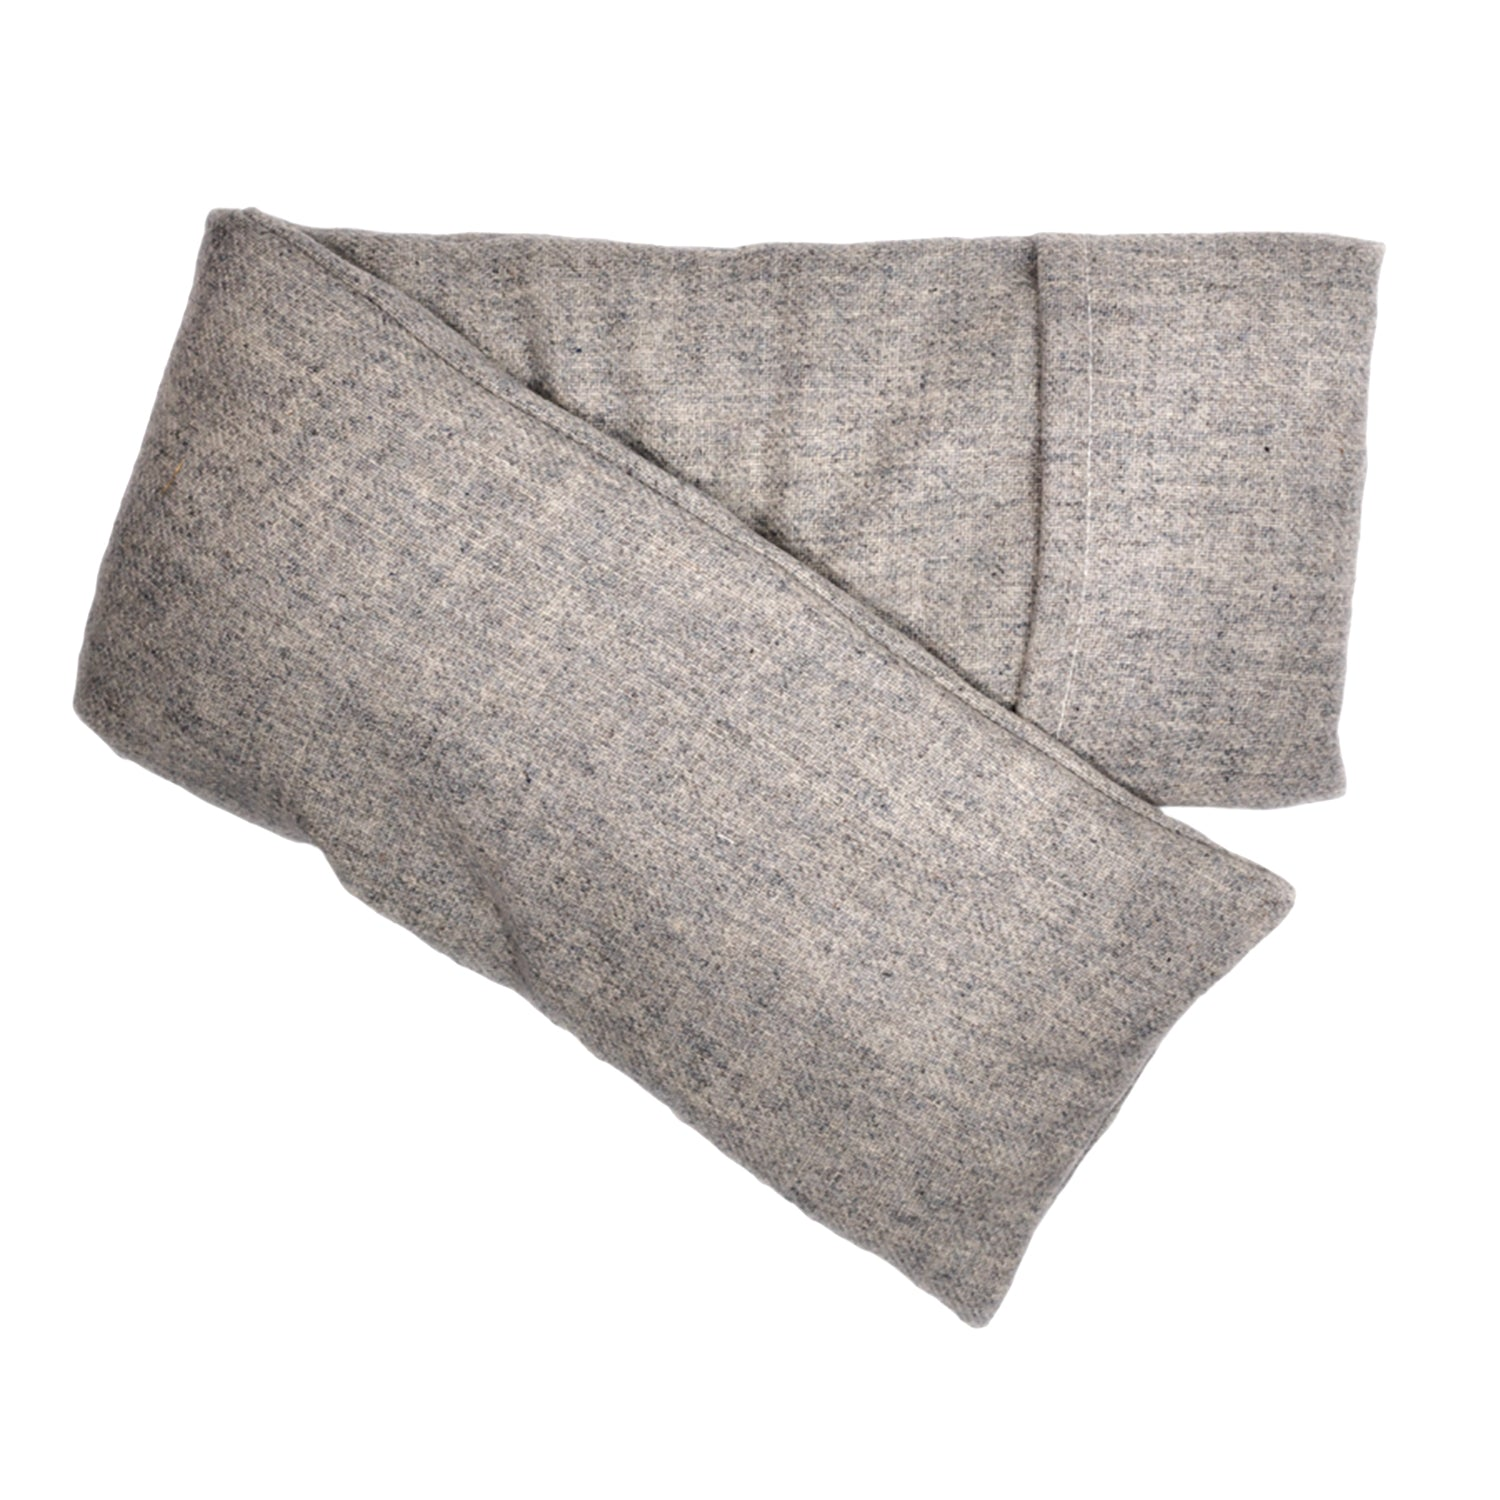 Wool - Heather Gray Hot/Cold Flaxseed Pack